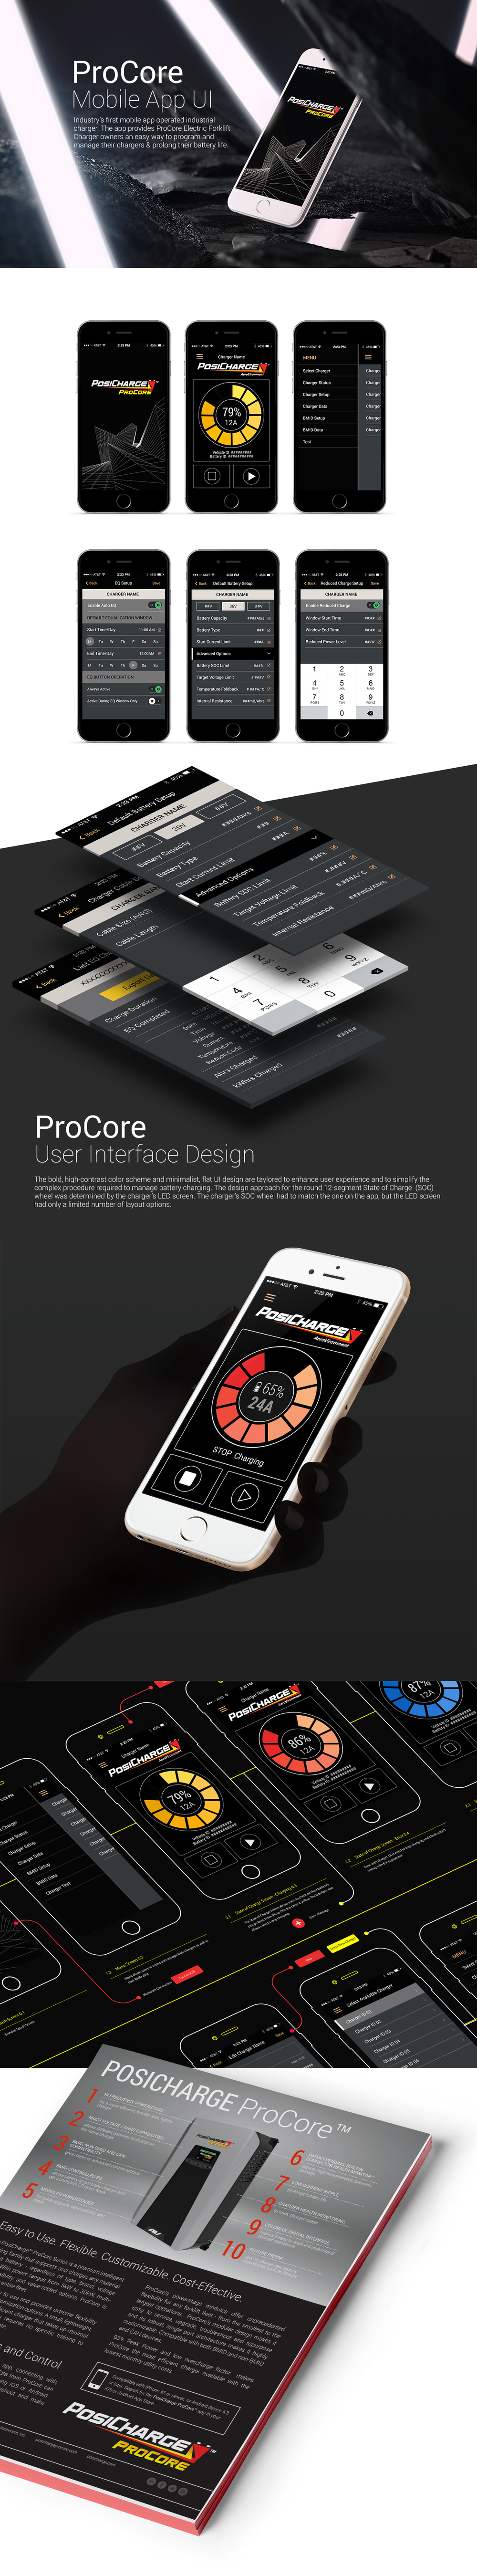 ProCore Mobile app user interface design